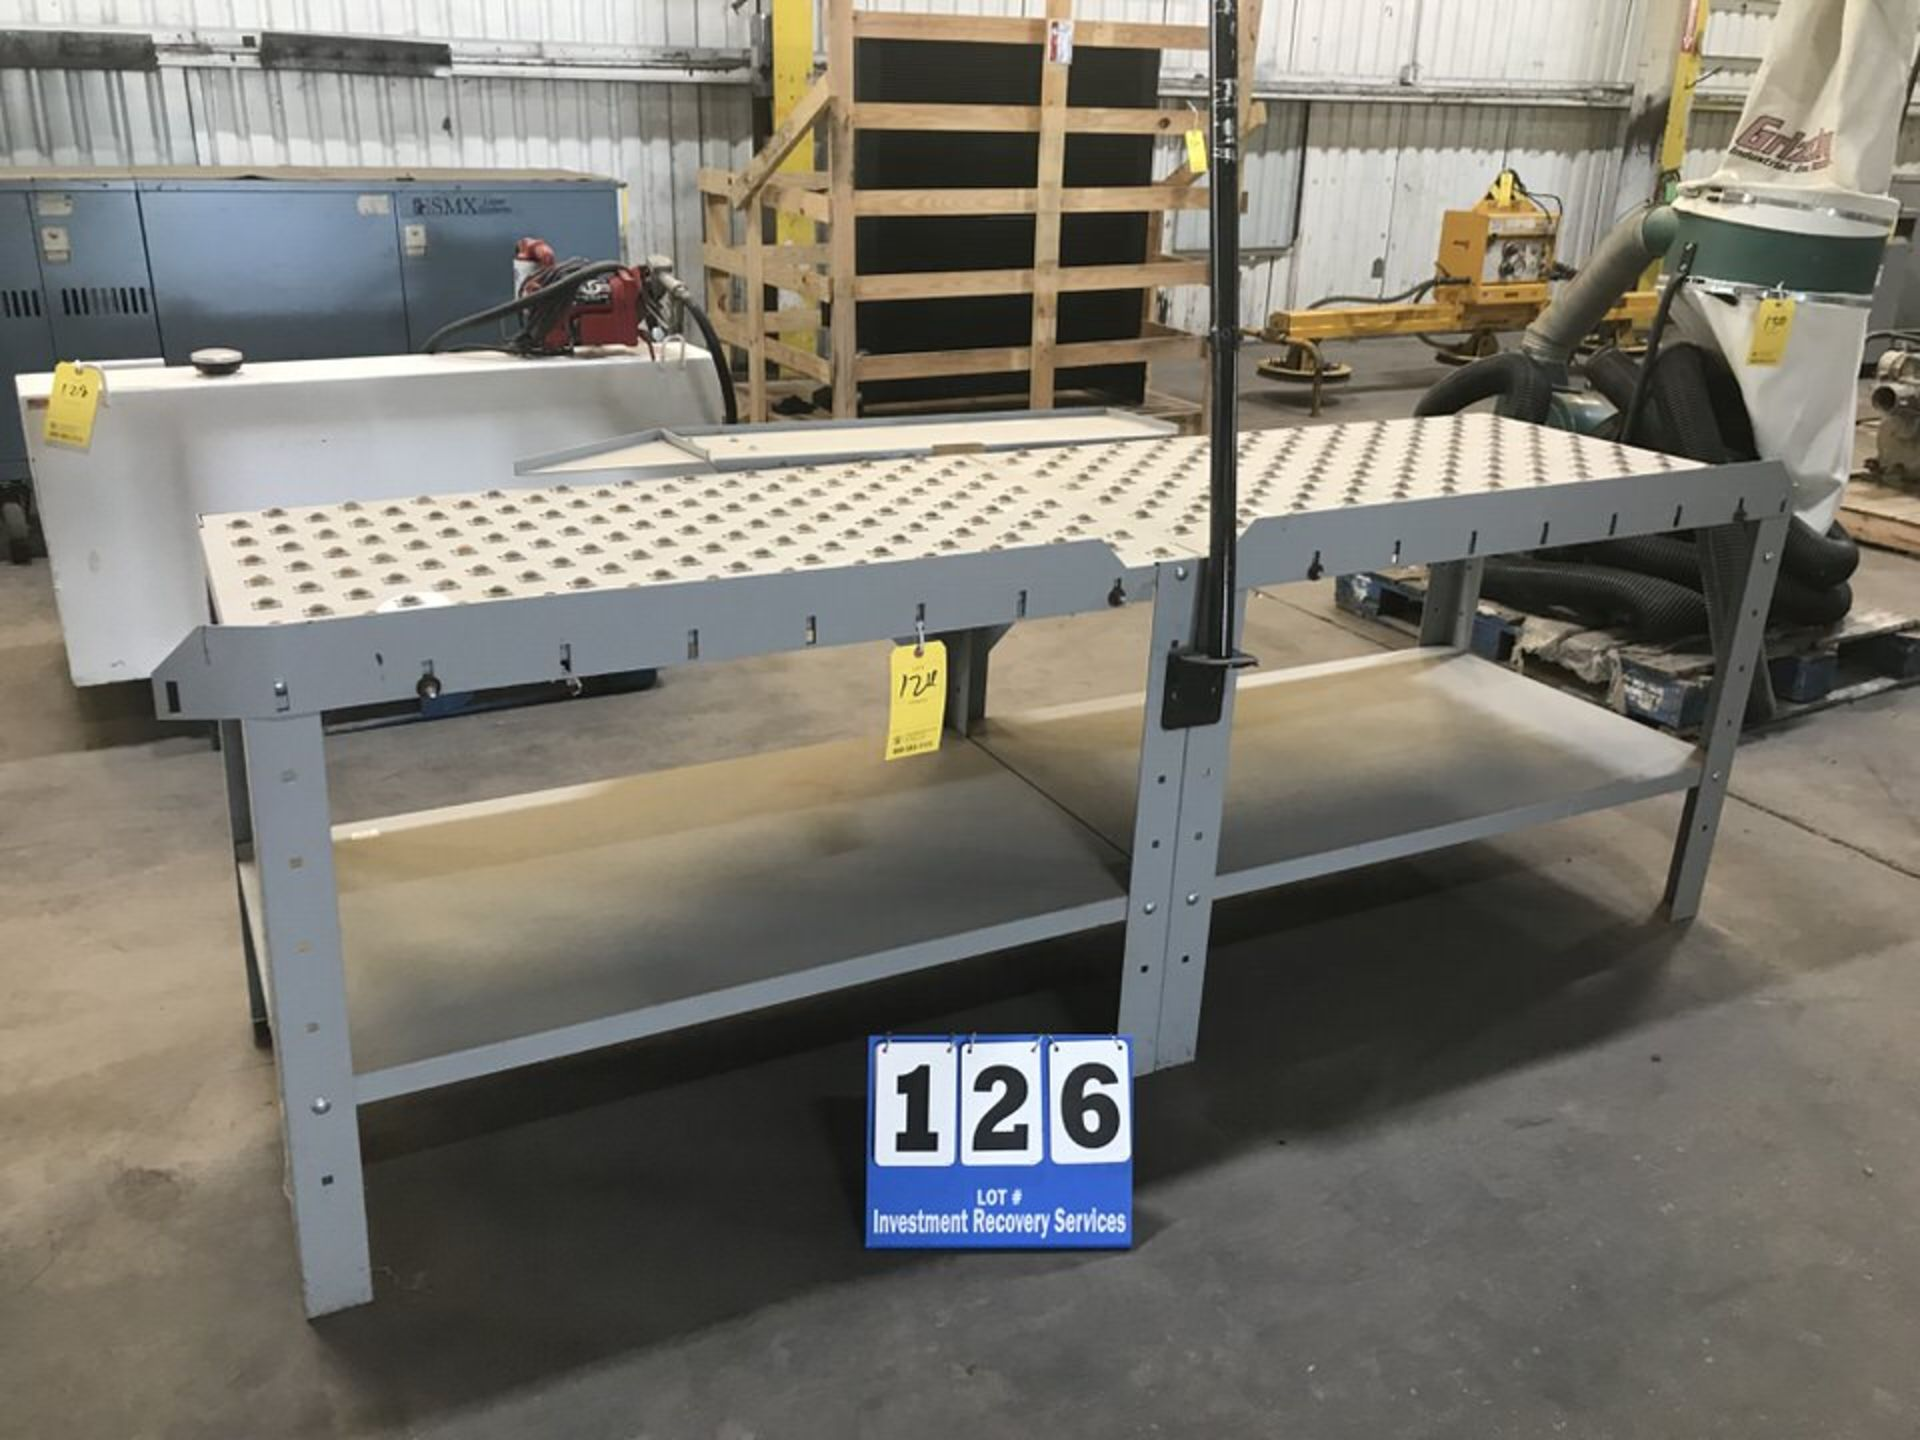 Lot 126 - Misc Conveyor (LOCATION: 3421 N SYLVANIA, FT WORTH, TX, 76111)